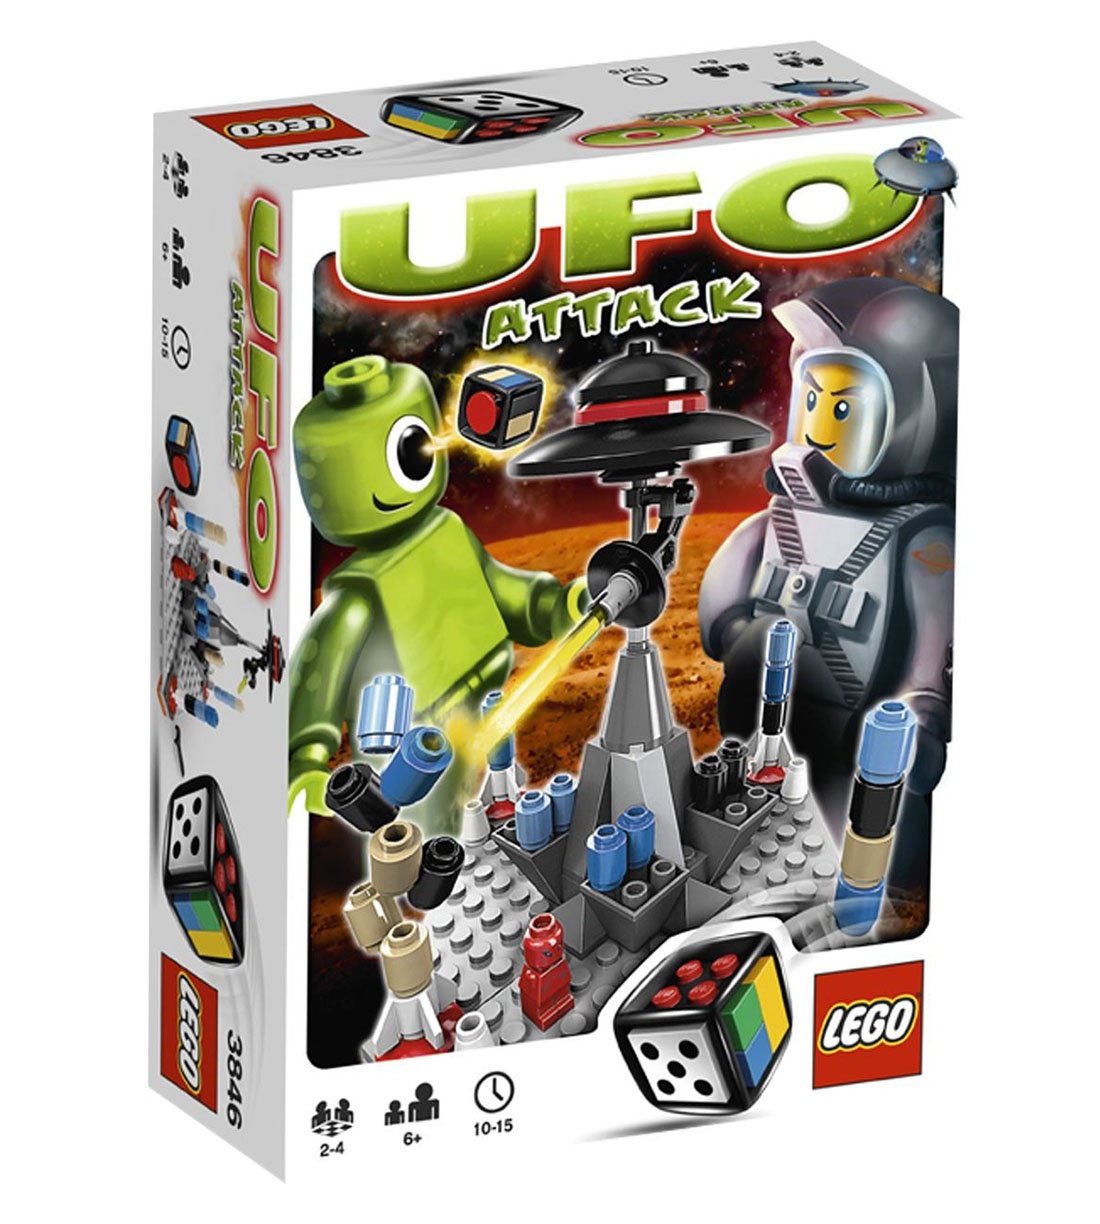 lego jeux de soci t 3846 pas cher ufo attack. Black Bedroom Furniture Sets. Home Design Ideas